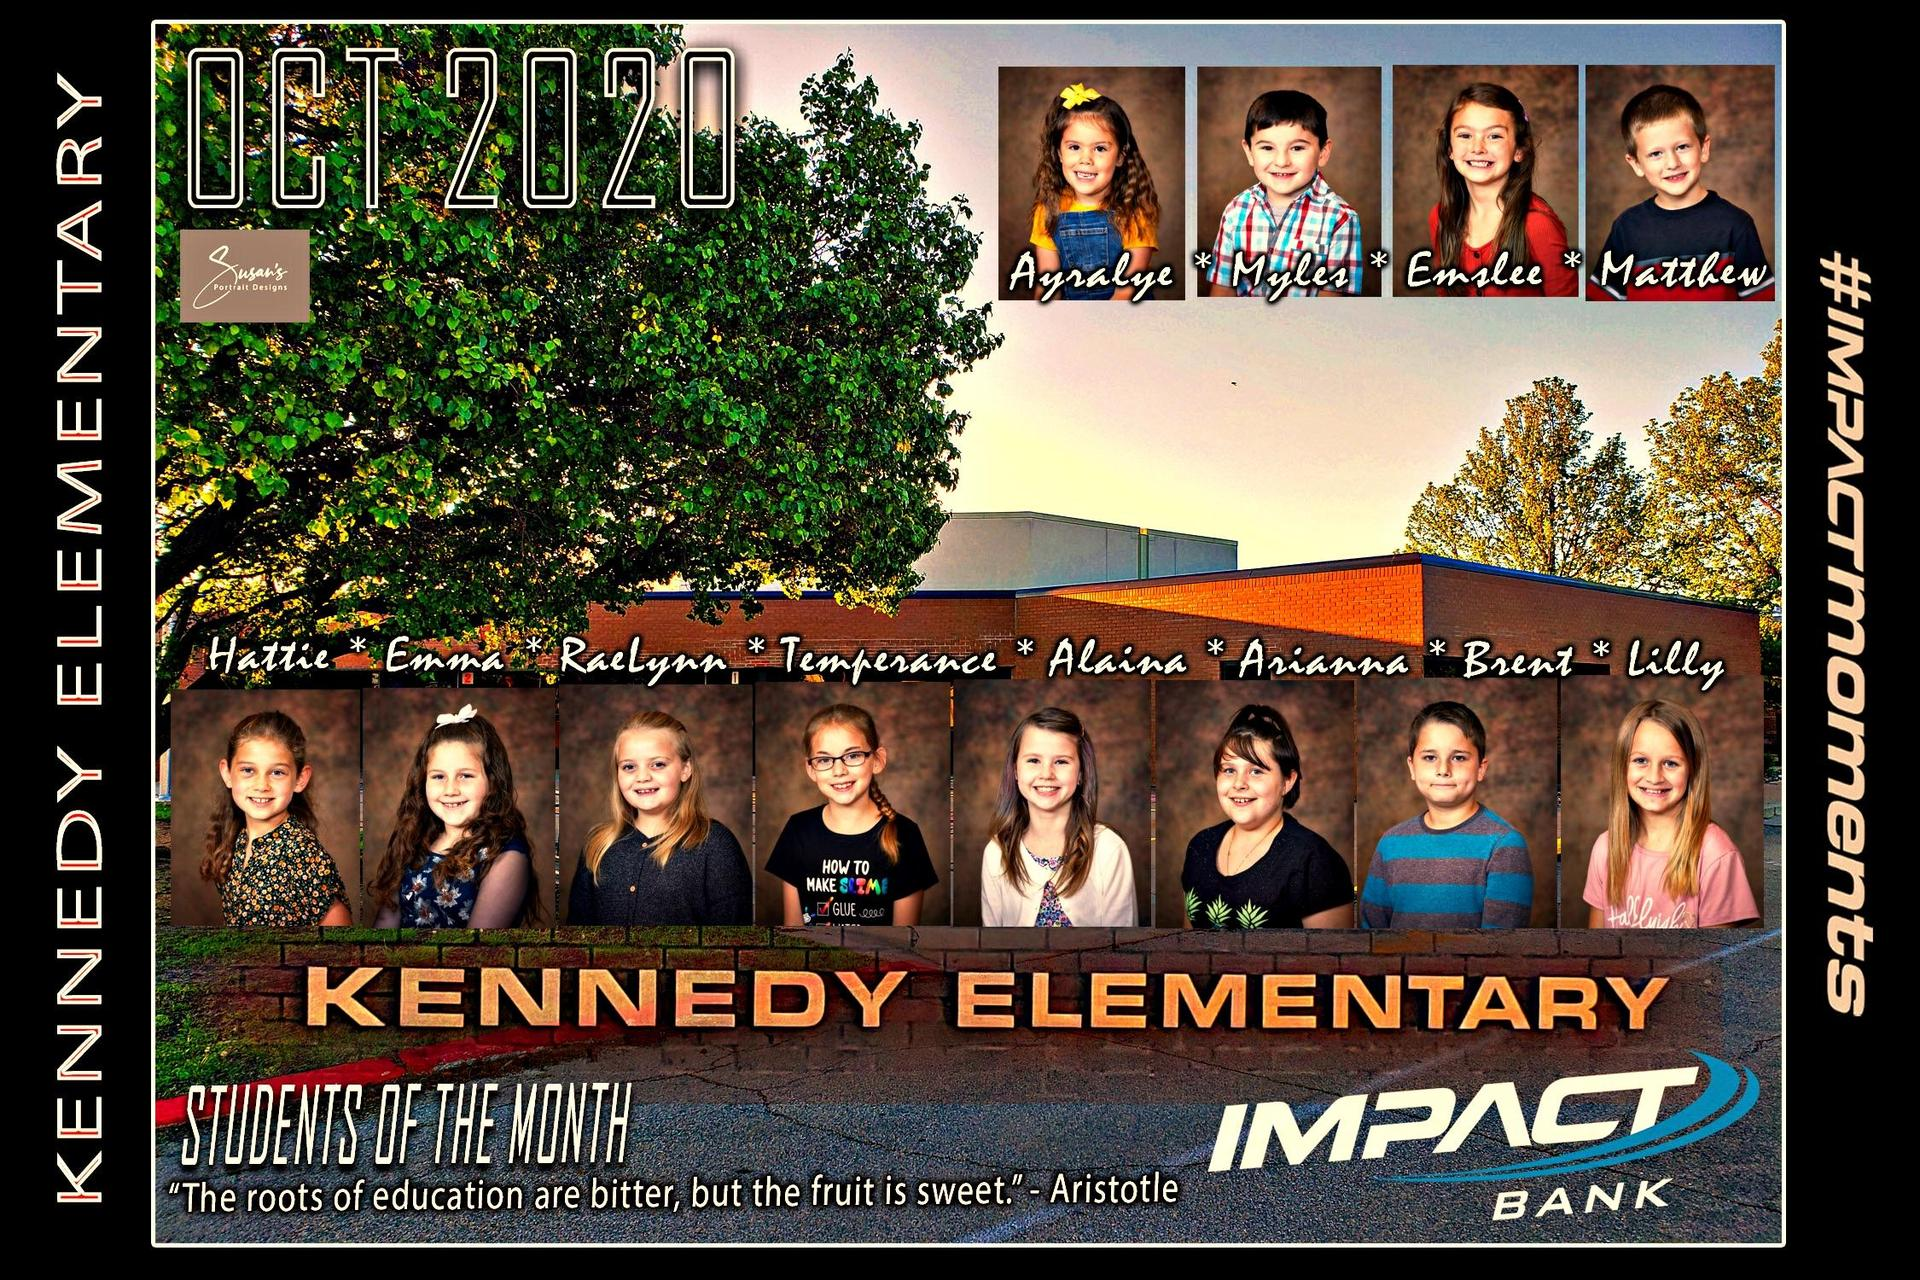 Kennedy Students of the Month OCT 2020